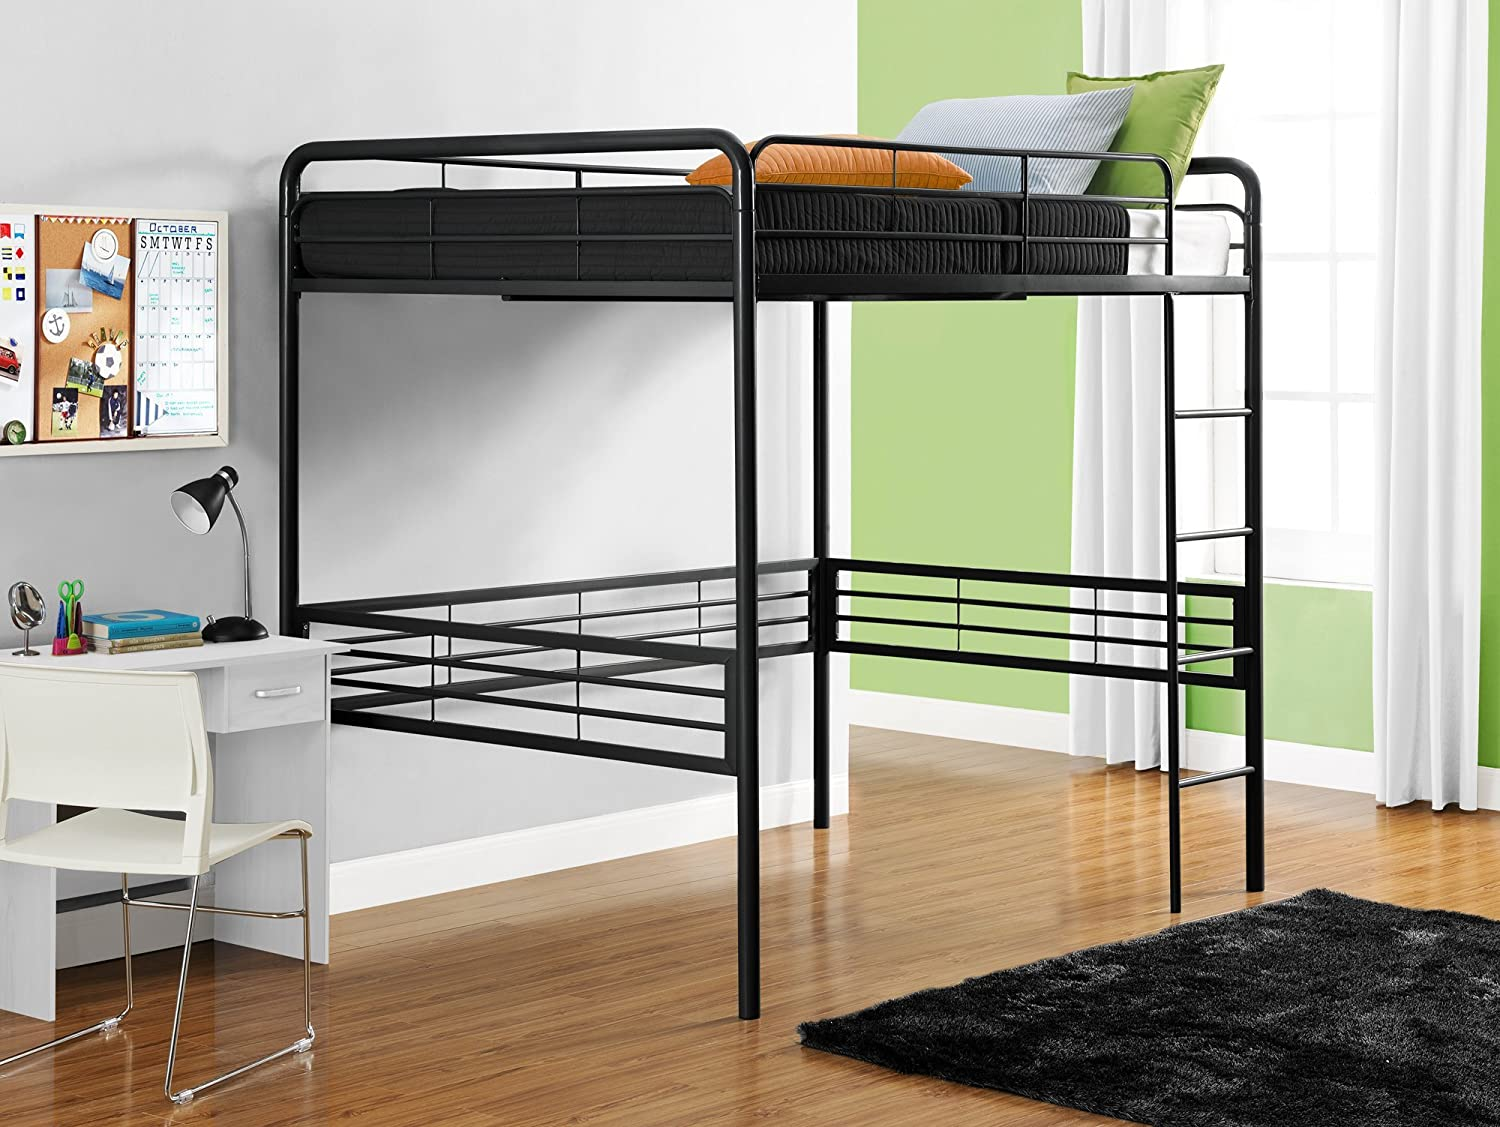 amazoncom dhp full size loft bed with metal frame and ladder black kitchen u0026 dining - Loft Beds For Sale